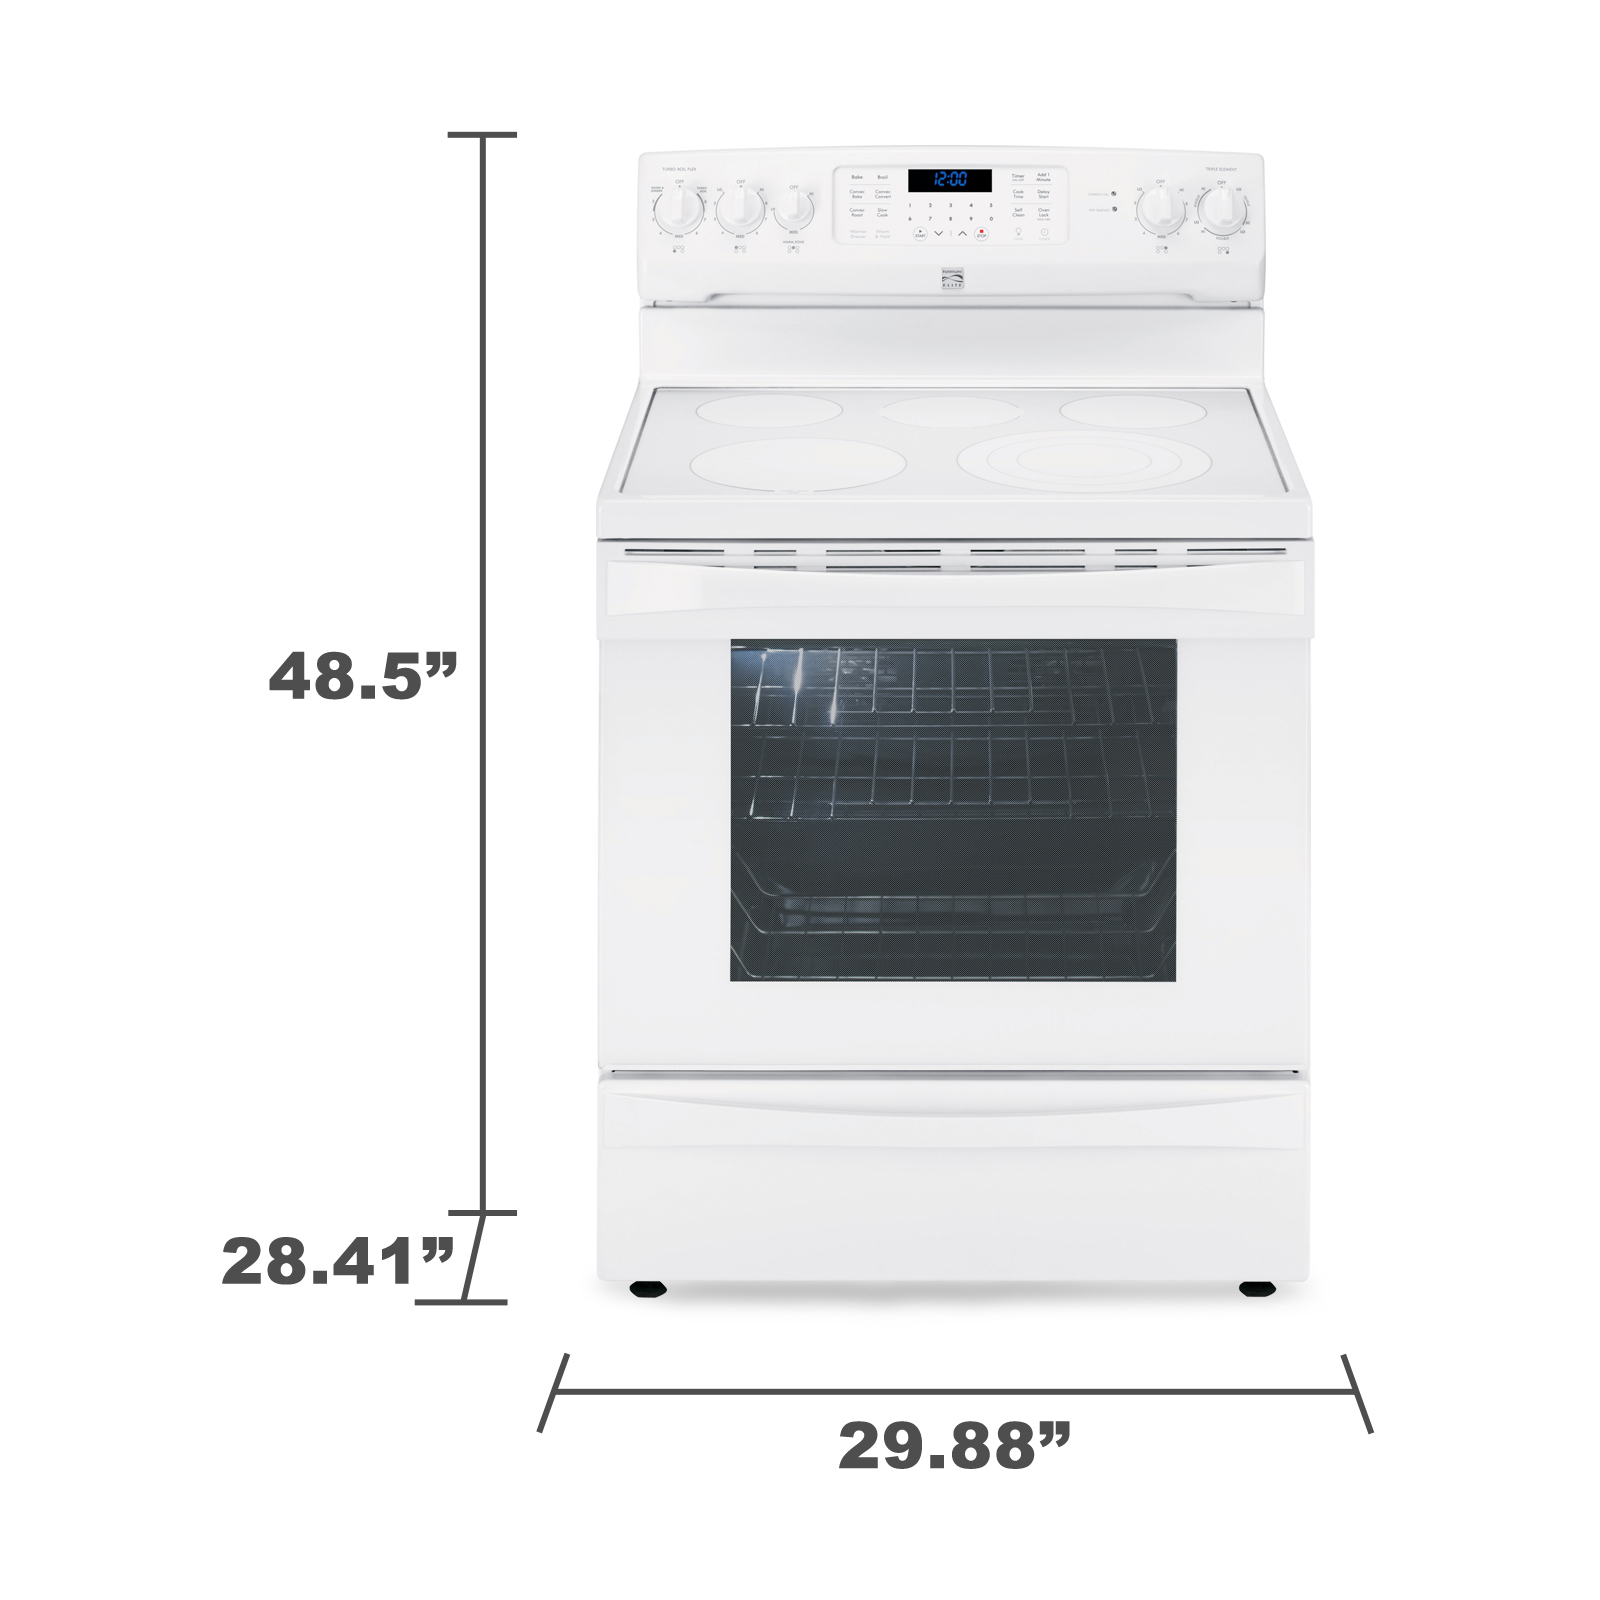 Kenmore Elite 95052 6.1 cu. ft. Electric Range w/ Dual True Convection - White